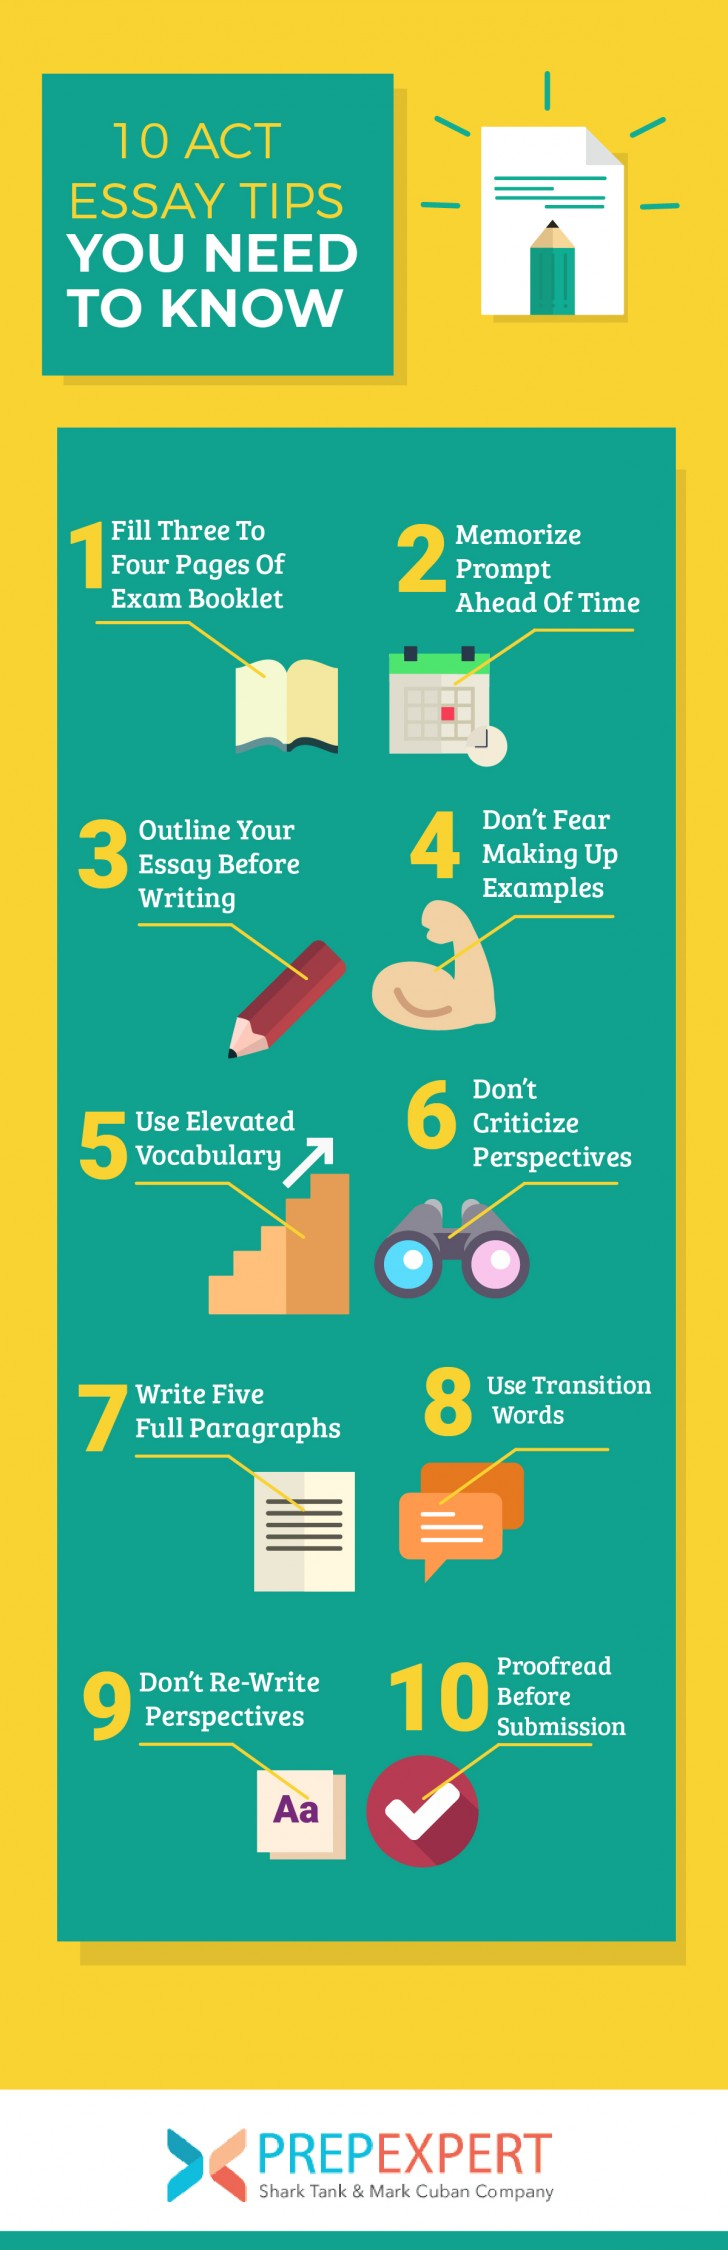 017 Essay Example Act 235585 Essayinfographics 052918 Fearsome New Time Limit Rubric Tips 728